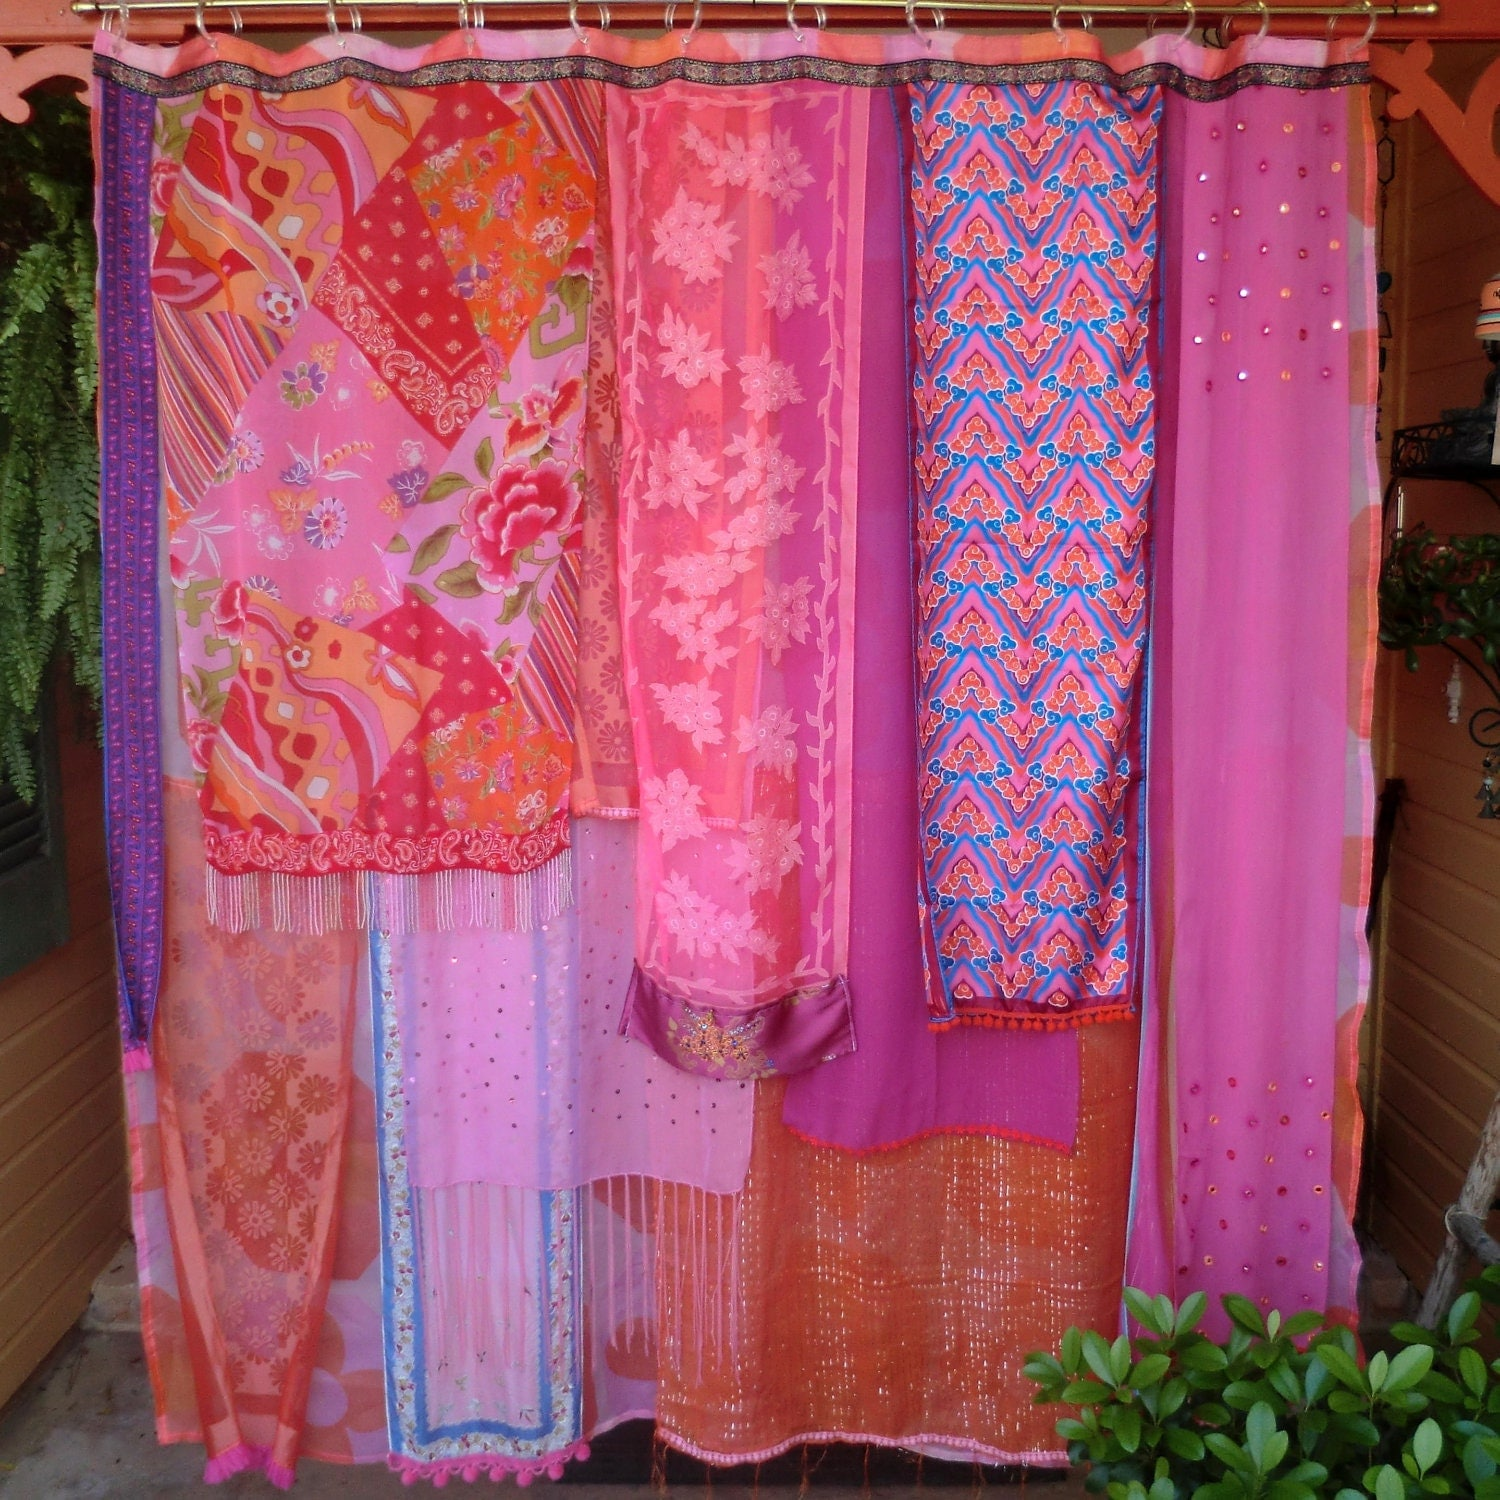 You searched for: boho shower curtain! Etsy is the home to thousands of handmade, vintage, and one-of-a-kind products and gifts related to your search. No matter what you're looking for or where you are in the world, our global marketplace of sellers can help you .